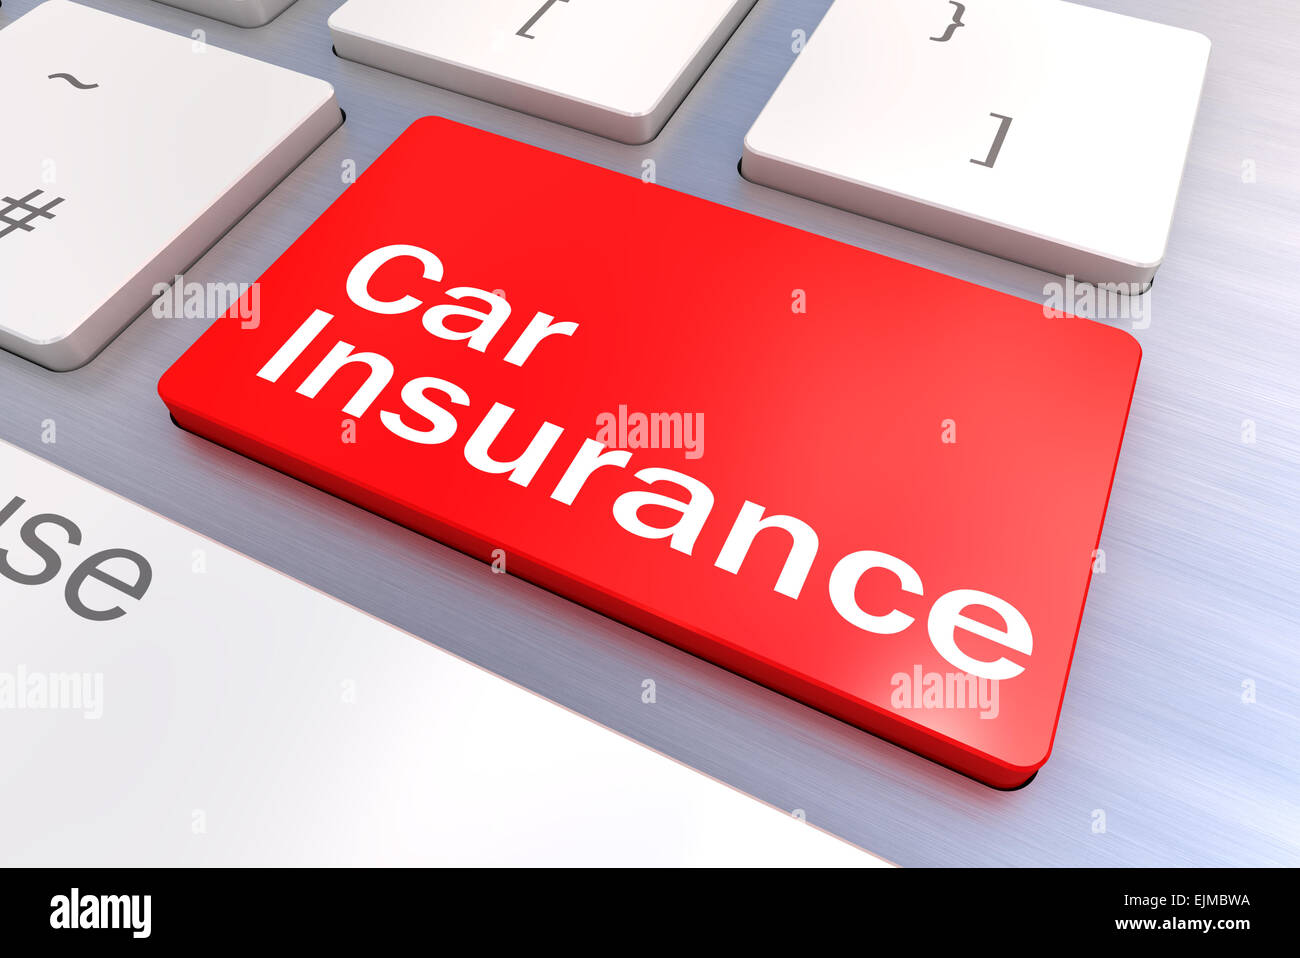 Computer keyboard rendered illustration with a Car Insurance Button Concept - Stock Image